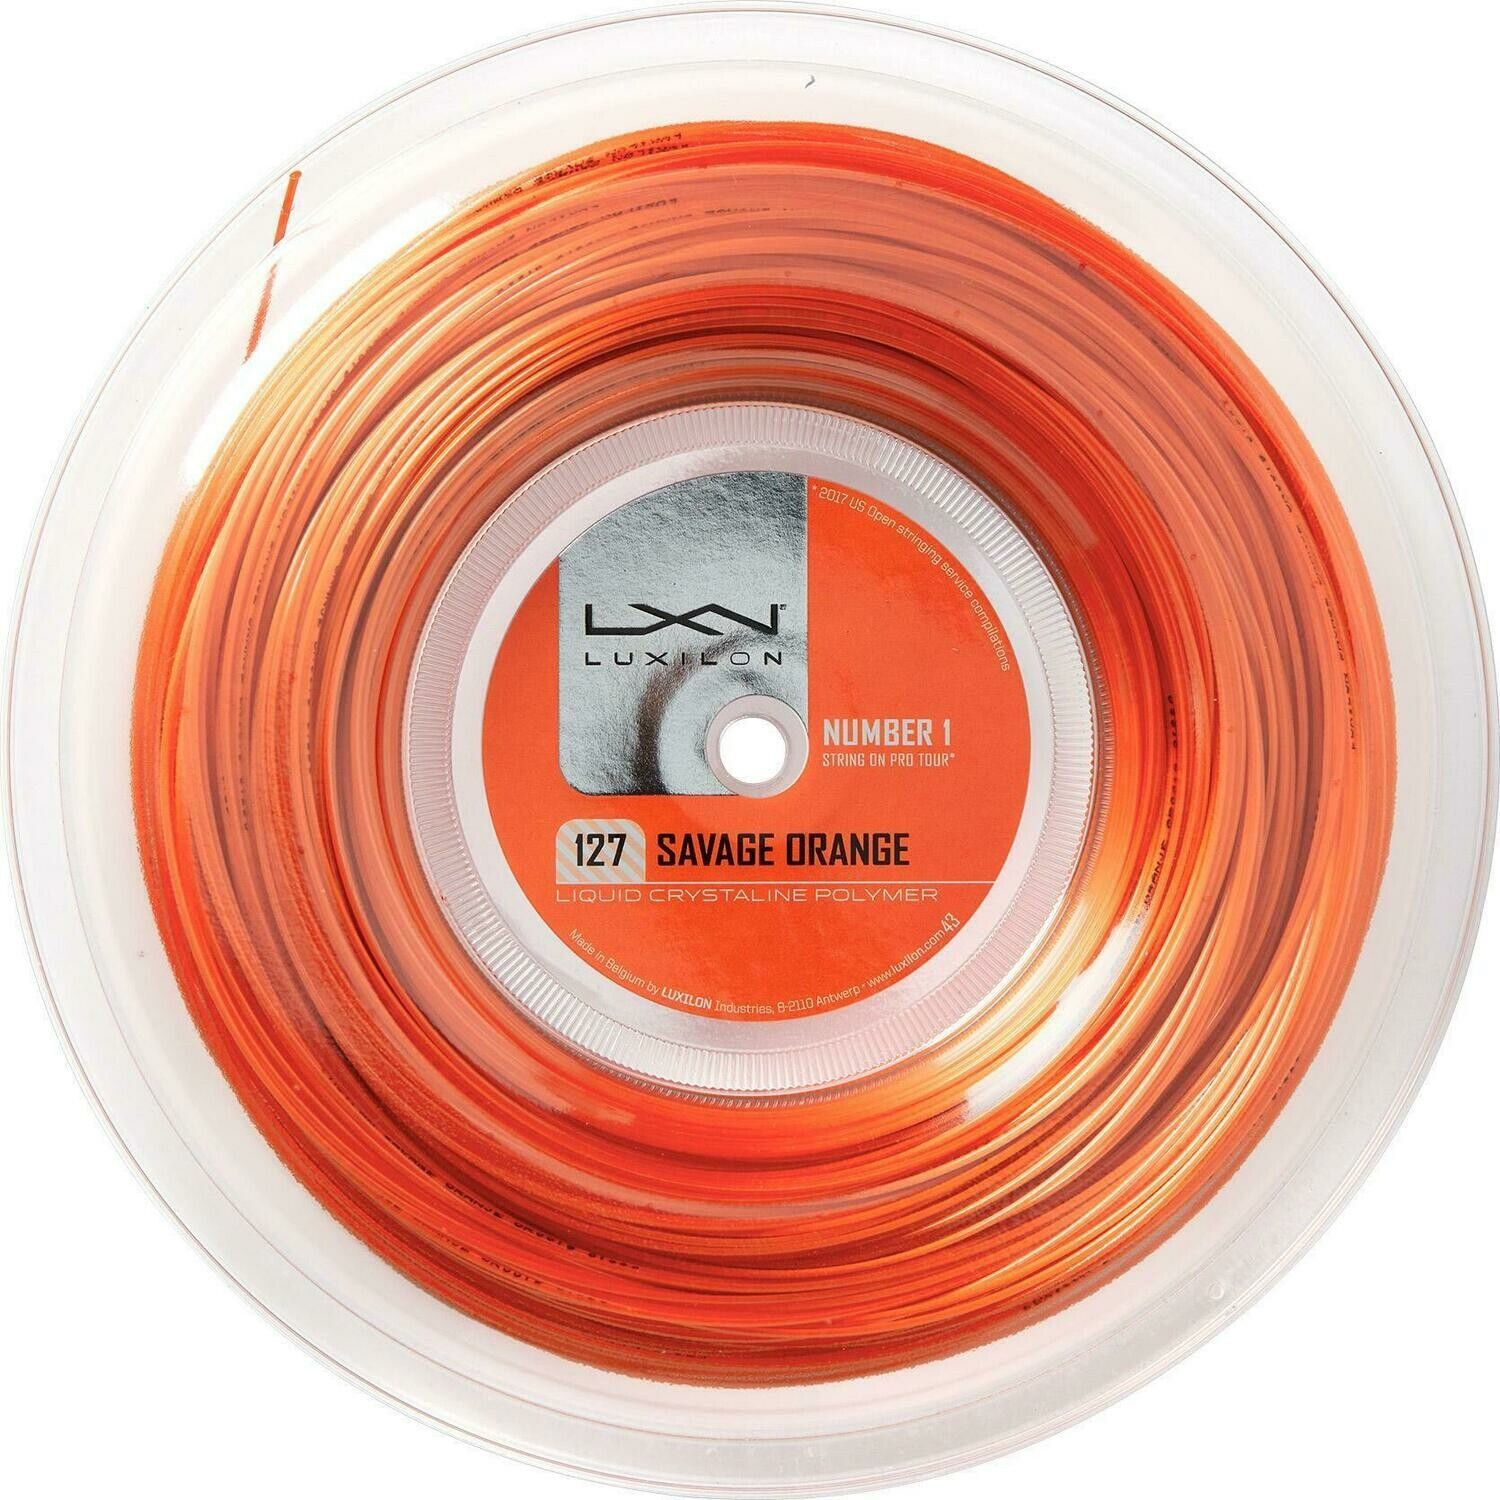 Luxilon Savage 127 200m Reel - Orange